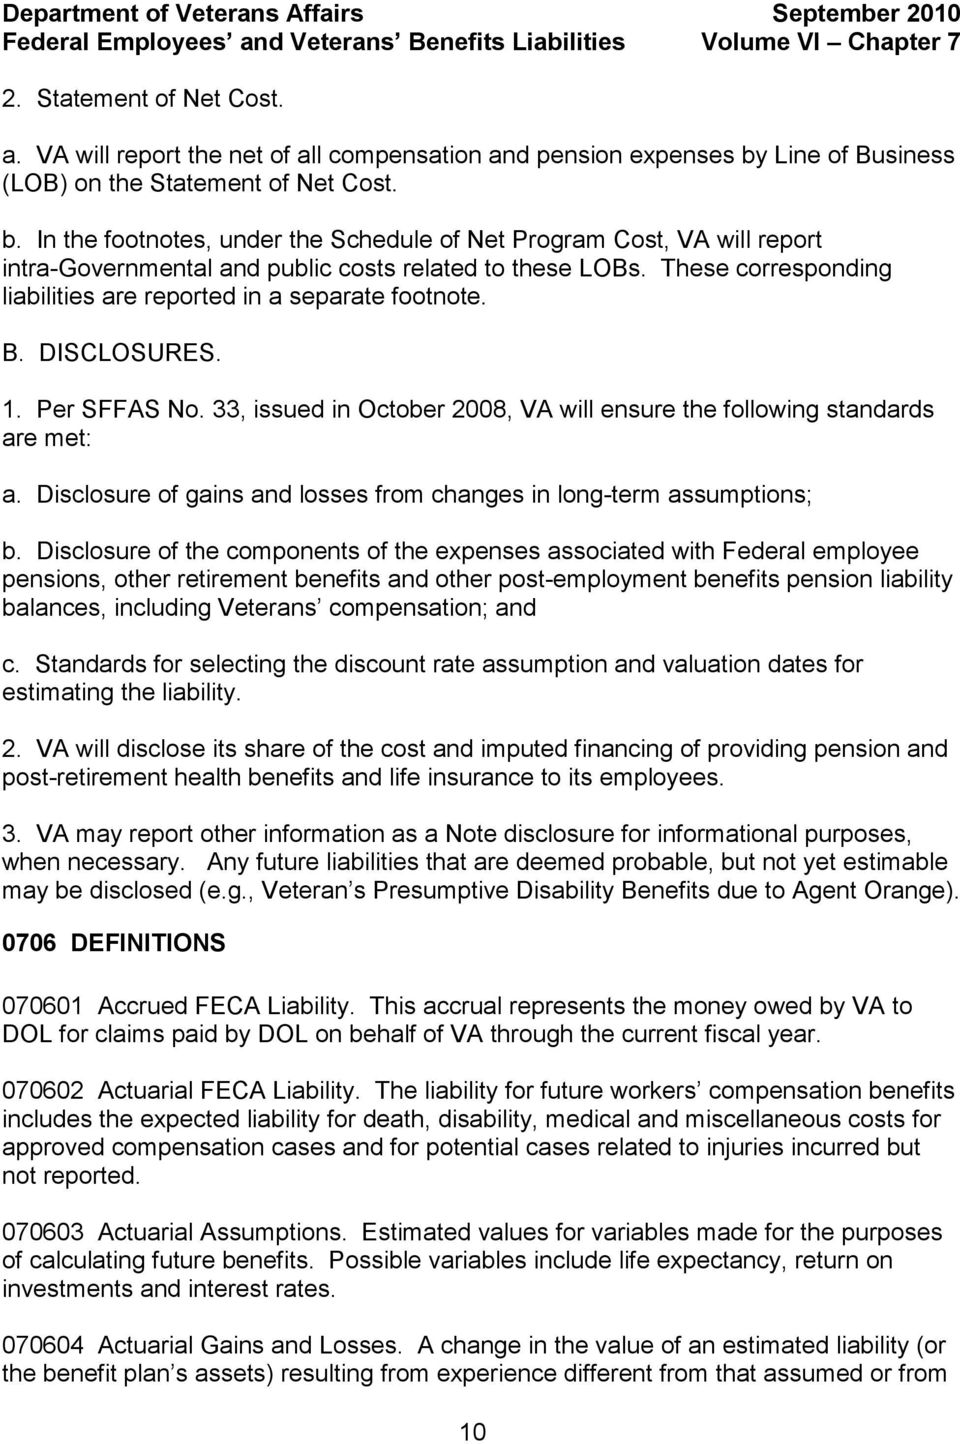 These corresponding liabilities are reported in a separate footnote. B. DISCLOSURES. 1. Per SFFAS No. 33, issued in October 2008, VA will ensure the following standards are met: a.